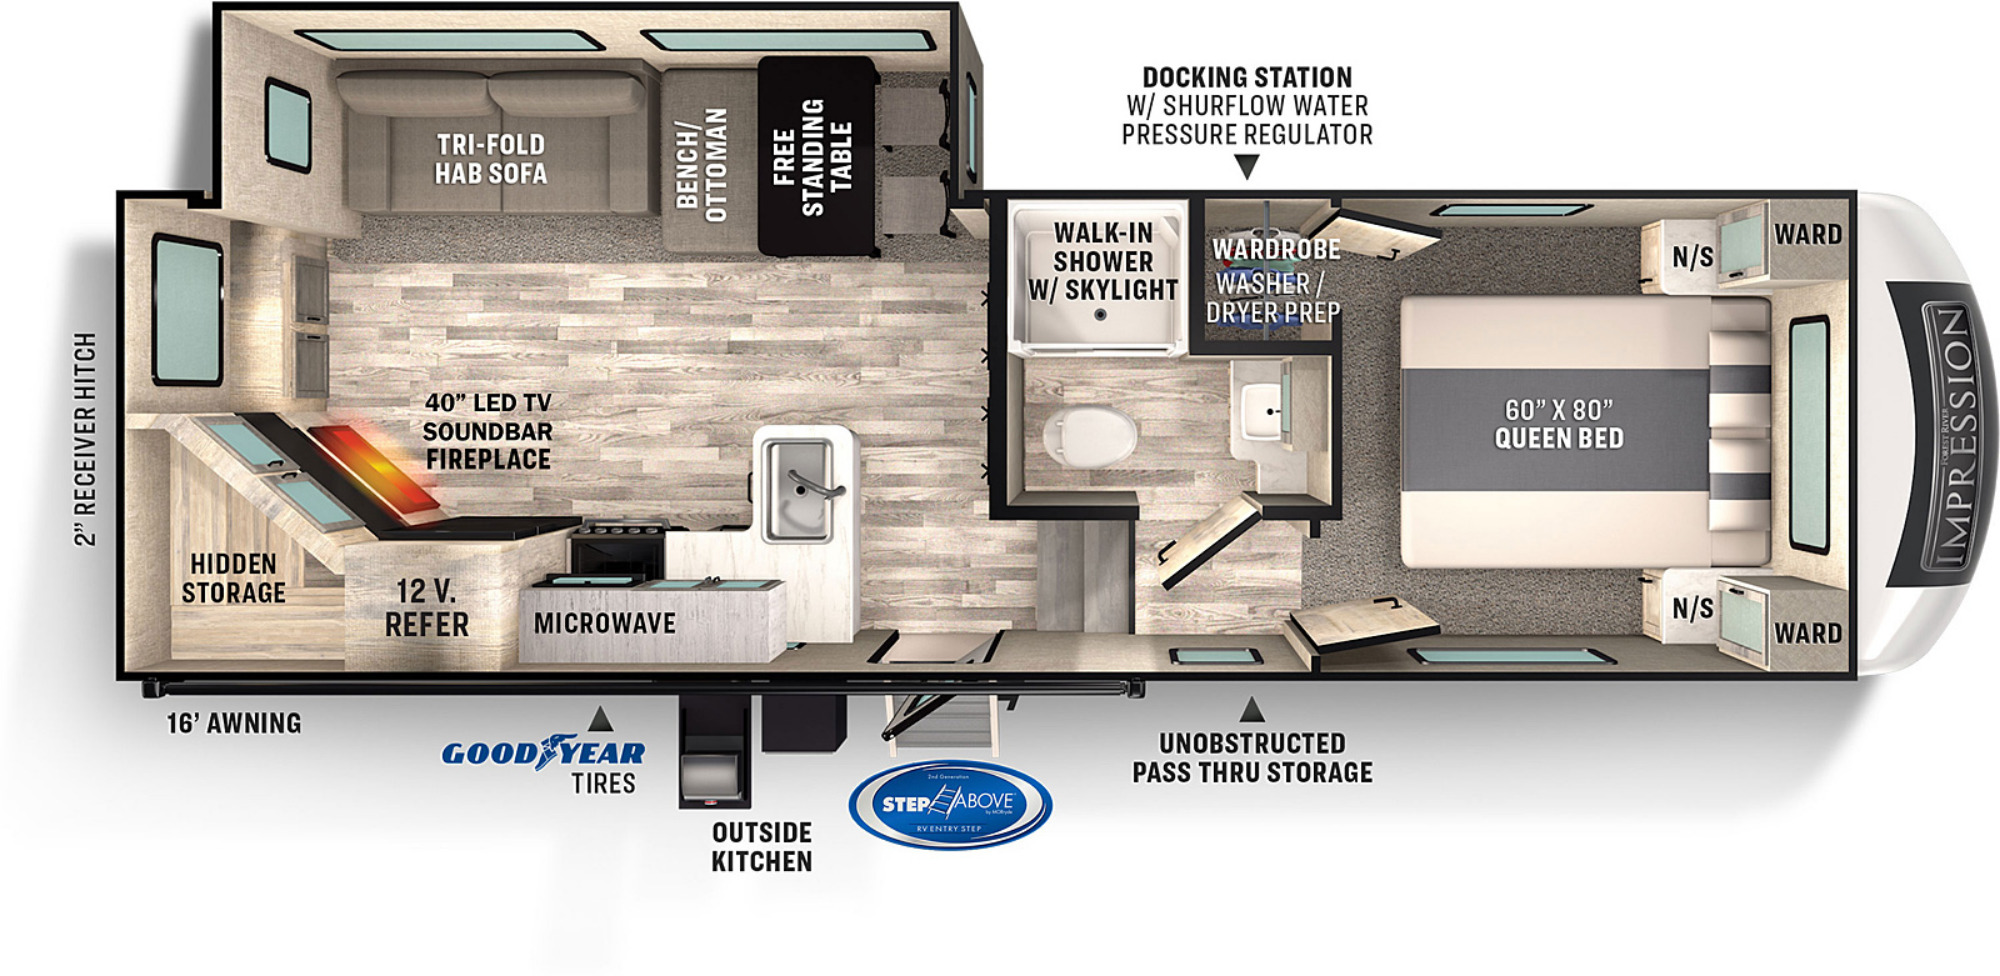 View Floor Plan for 2022 FOREST RIVER IMPRESSION 240RE